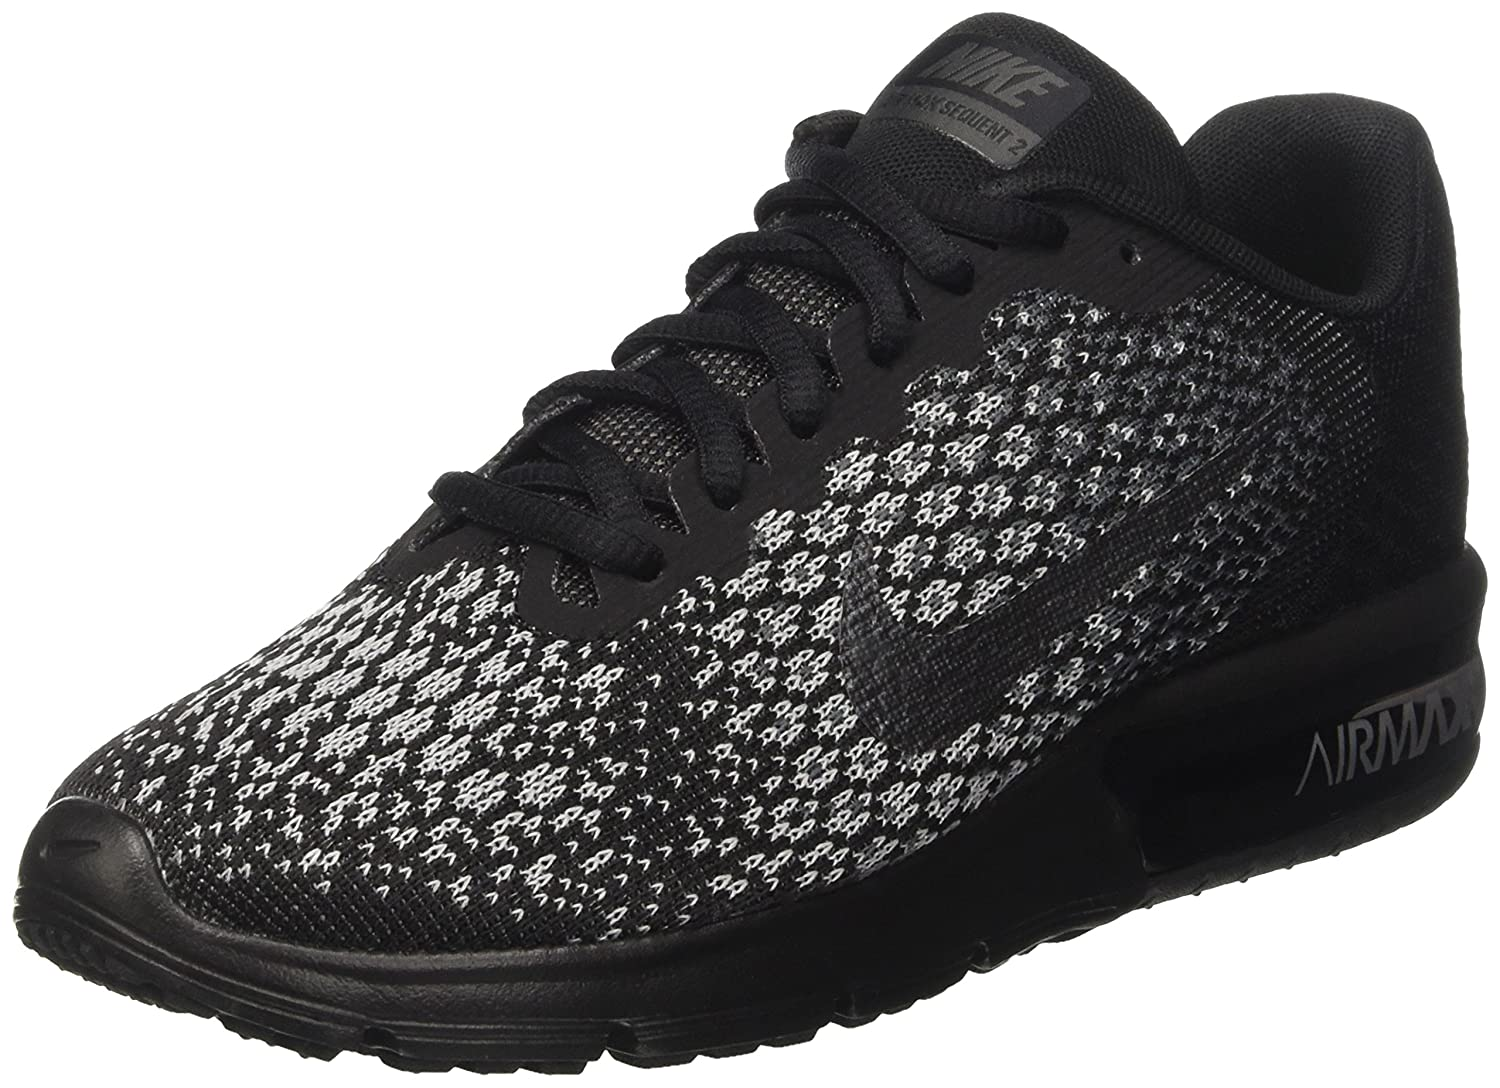 NIKE Men's Air Max Sequent 2 Running Shoe B01H4XFKUU 9.5 B(M) US|Black/Mtlc Hematite/Dark Grey